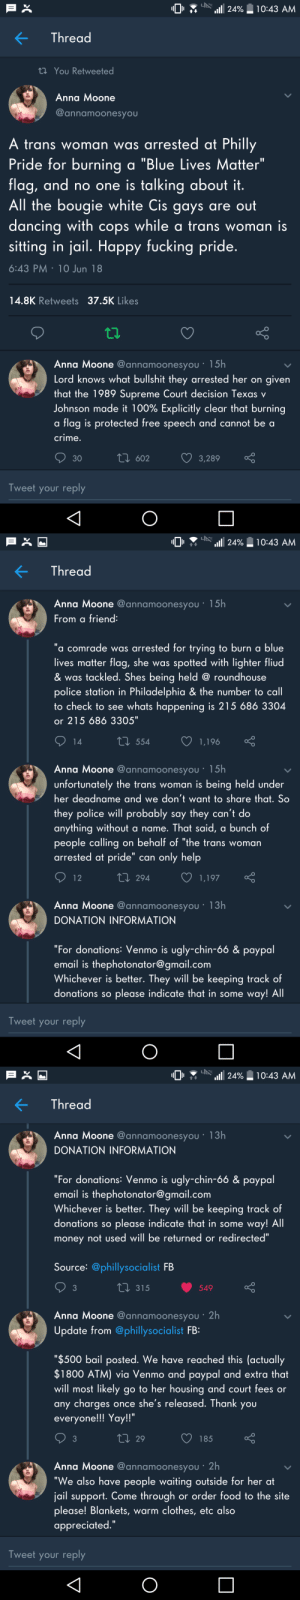 "Anaconda, Anna, and Clothes: 10  ins 111 24%  10:43 AM  Thread  ti You Retweeted  Anna Moone  @annamoonesyou  trans woman was arrested at Philly  Pride for burning a ""Blue Lives Matter""  flag, and no one is talking about it  All the bougie white Cis gays are out  dancing with cops while a trans woman iS  sitting in jail. Happy fucking pride  6:43 PM 10 Jun 18  14.8K Retweets 37.5K Likes  Anna Moone @annamoonesyou  Lord knows what bullshit they arrested her on given  that the 1989 Supreme Court decision Texas v  Johnson made it 100% Explicitly clear that burning  a flag is protected free speech and cannot be a  crime  602  3,289  30  Tweet your reply   10 ז . "".וזו24% ו-0:43 AM  KThread  Anna Moone @annamoonesyou . 15h  From a friend  ""a comrade was arrested for trying to burn a blue  lives matter flag, she was spotted with lighter fliu  & was tackled. Shes being held @ roundhouse  police station in Philadelphia  to check to see whats happening is 215 686 3304  or 215 686 3305""  & the number to call  t0 554  1.196  Anna Moone @annamoonesyou 15h  unfortunately the trans woman is being held under  her deadname and we don t want to share that. So  they police will probably say they can't do  anything without a name. That said, a bunch of  people calling on behalf of ""the trans woman  arrested at pride"" can only help  294  1,197  Anna Moone @annamoonesyou . 13h  DONATION INFORMATION  For donations: Venmo is ugly-chin-66 & paypal  email is thephotonator@ gmail.comm  Whichever is better. They will be keeping track of  donations so please indicate that in some way! All  Tweet your reply   1011 . 니"".1111 24%-10:43 AM  KThread  Anna Moone @annamoonesyou . 13h  DONATION INFORMATION  For donations: Venmo is ugly-chin-66 & paypal  email is thephotonator@ gmail.comm  Whichever is better. They will be keeping track of  donations so please indicate that in some way! All  money not used will be returned or redirected""  Source: @phillysocialist FB  3  315  549  Anna Moone @annamoonesyou 2h  Update from @phillysocialist FB:  ""$500 bail posted. We have reached this (actually  $1800 ATM) via Venmo and paypal and extra that  will most likely go to her housing and court fees or  any charges once she's released. Thank you  everyone!!! Yay!!""  3  29  185  Anna Moone @annamoonesyou 2h  ""We also have people waiting outside for her at  jail support. Come through or order tood to the site  please! Blankets, warm clothes, etc also  appreciated.""  Tweet your reply madsadcatfish:  Tweets read:  ""A trans woman was arrested at Philly Pride for burning a Blue Lives Matter flag, and no one is talking about it. All the bougie white cis gays are out dancing with cops while a trans woman is sitting in jail. Happy fucking pride.  Lord knows what bullshit they arrested her on given that the 1989 Supreme Court decision Texas v Johnson made it 100% explicitly clear that burning a flag is protected free speech and cannot be a crime.  From a friend: a comrade was arrested for trying to burn a blue lives matter flag, she was spotted with lighter fluid  was tackled. She's being held @ roundhouse police station in Philadelphia  the number to call to check to see what's happening is 215 686 3304 or 215 686 3305.""  unfortunately the trans woman is being held under her deadname and we don't want to share that. So the police will probably say they can't do anything without a name. That said, a bunch of people calling on behalf of ""the trans woman arrested at pride"" can only help.  DONATION INFORMATION: For donations, Venmo is ugly-chin-66 and PayPal email is thephotonator@gmail.com. whichever is better. They will be keeping track of donations so please indicate that in some way! All money not used will be returned or redirected.  Update from Philly Socialist FB: ""$500 bail posted. We have reached this (actually $1800 ATM) via Venmo and PayPal and extra that will most likely go to her housing and court fees or any charges once she's released. Thank you everyone!!! Yay!!  We also have people waiting outside for her at jail support. Come through or order food to the site please! Blankets, warm clothes, etc. also appreciated.""  Friendly reminder that Pride started as a protest against police brutality.  Philly Socialists on Facebook for more info."